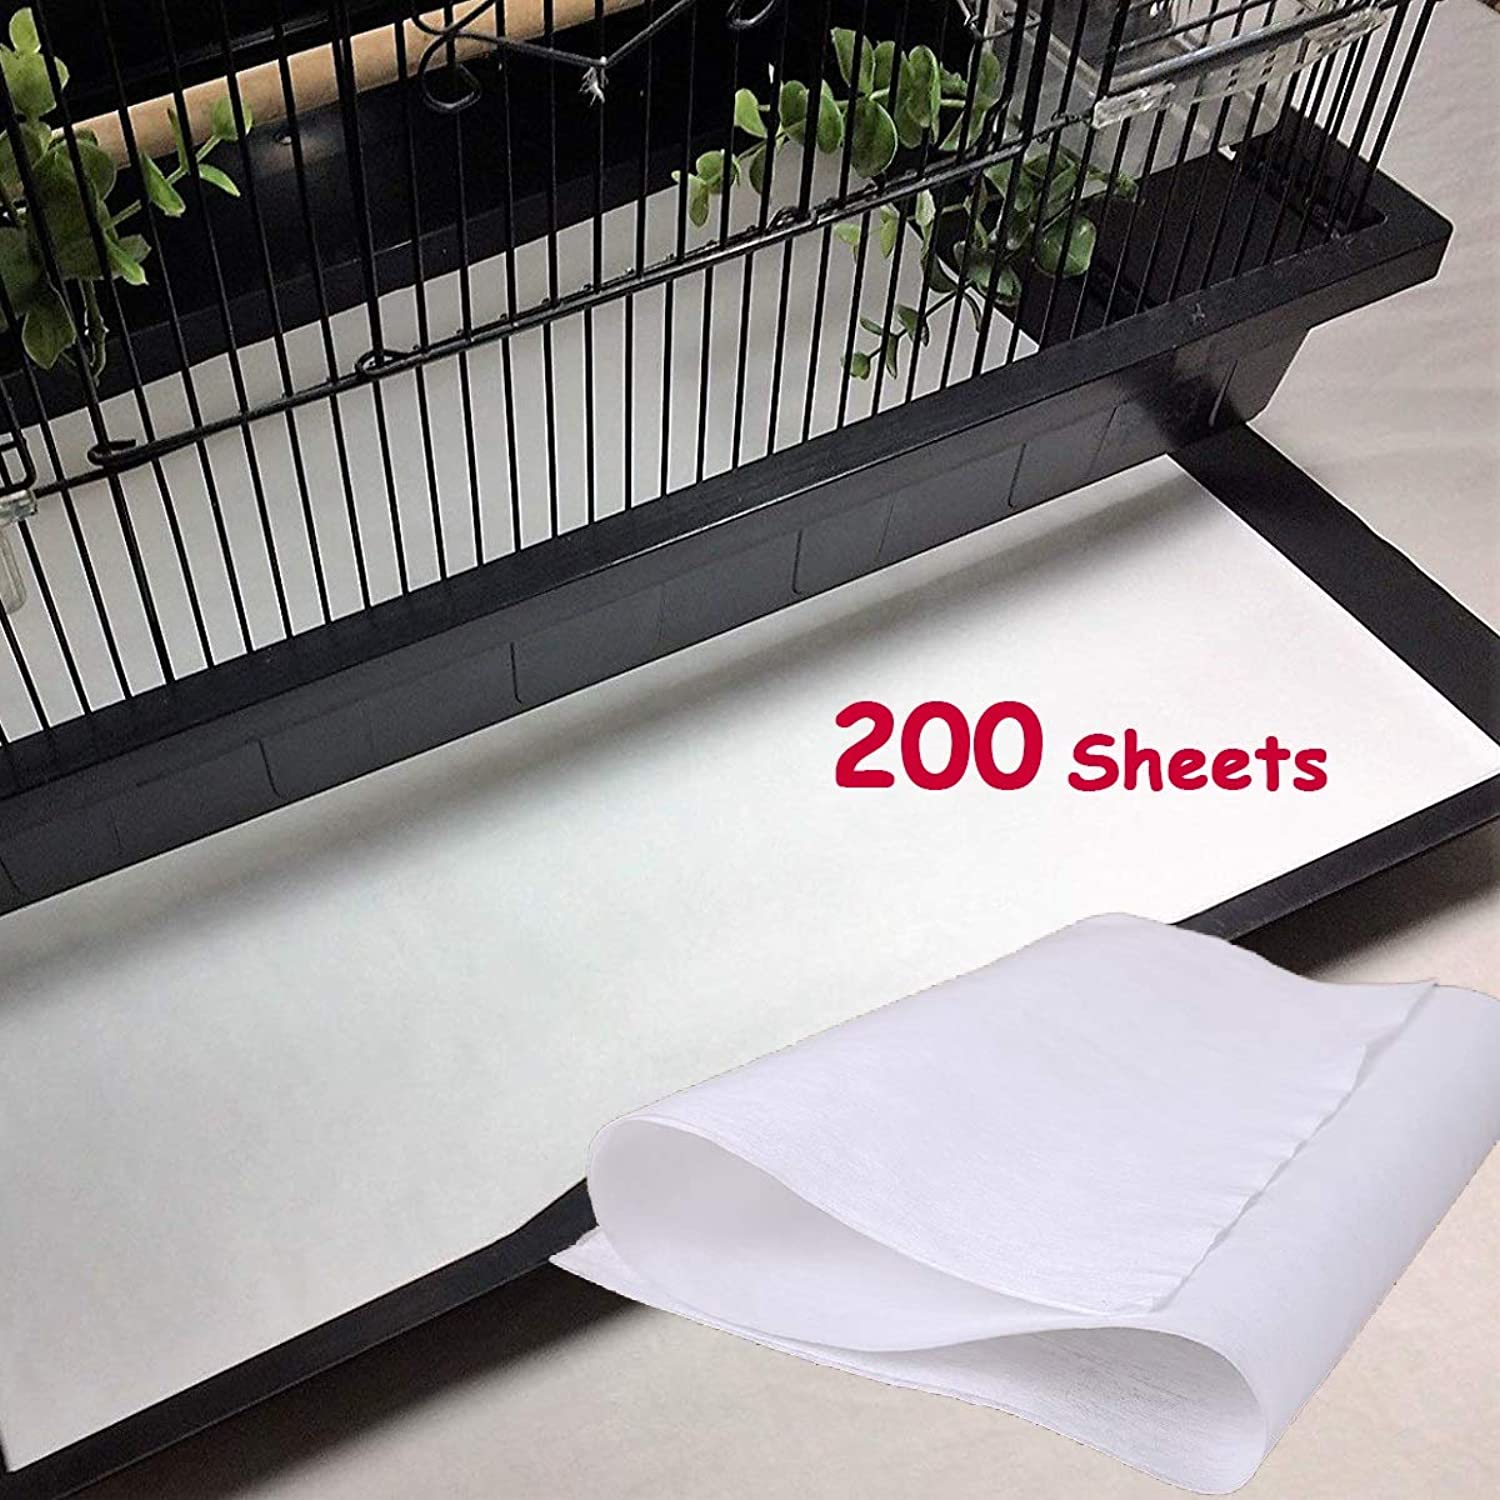 Bonaweite Disposable NonWoven Bird Cage Liners Papers, Parred Pet Cages Cushion Pad Mat Accessories, Square200 Sheets